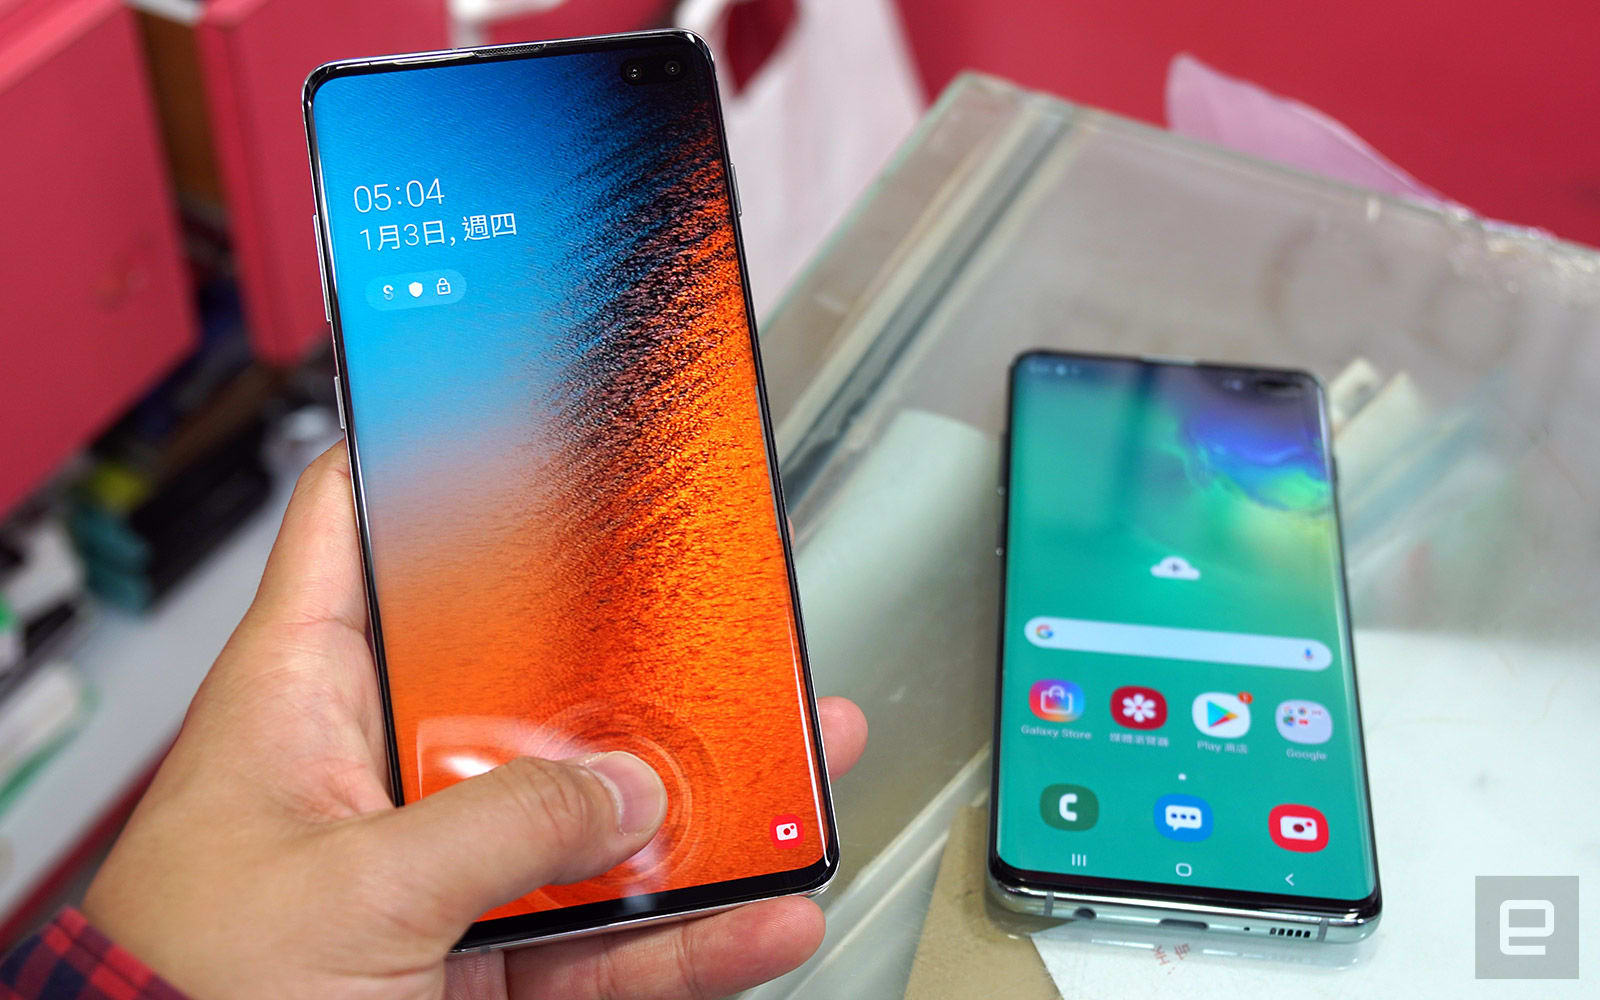 Samsung Galaxy S10 with UV screen protector